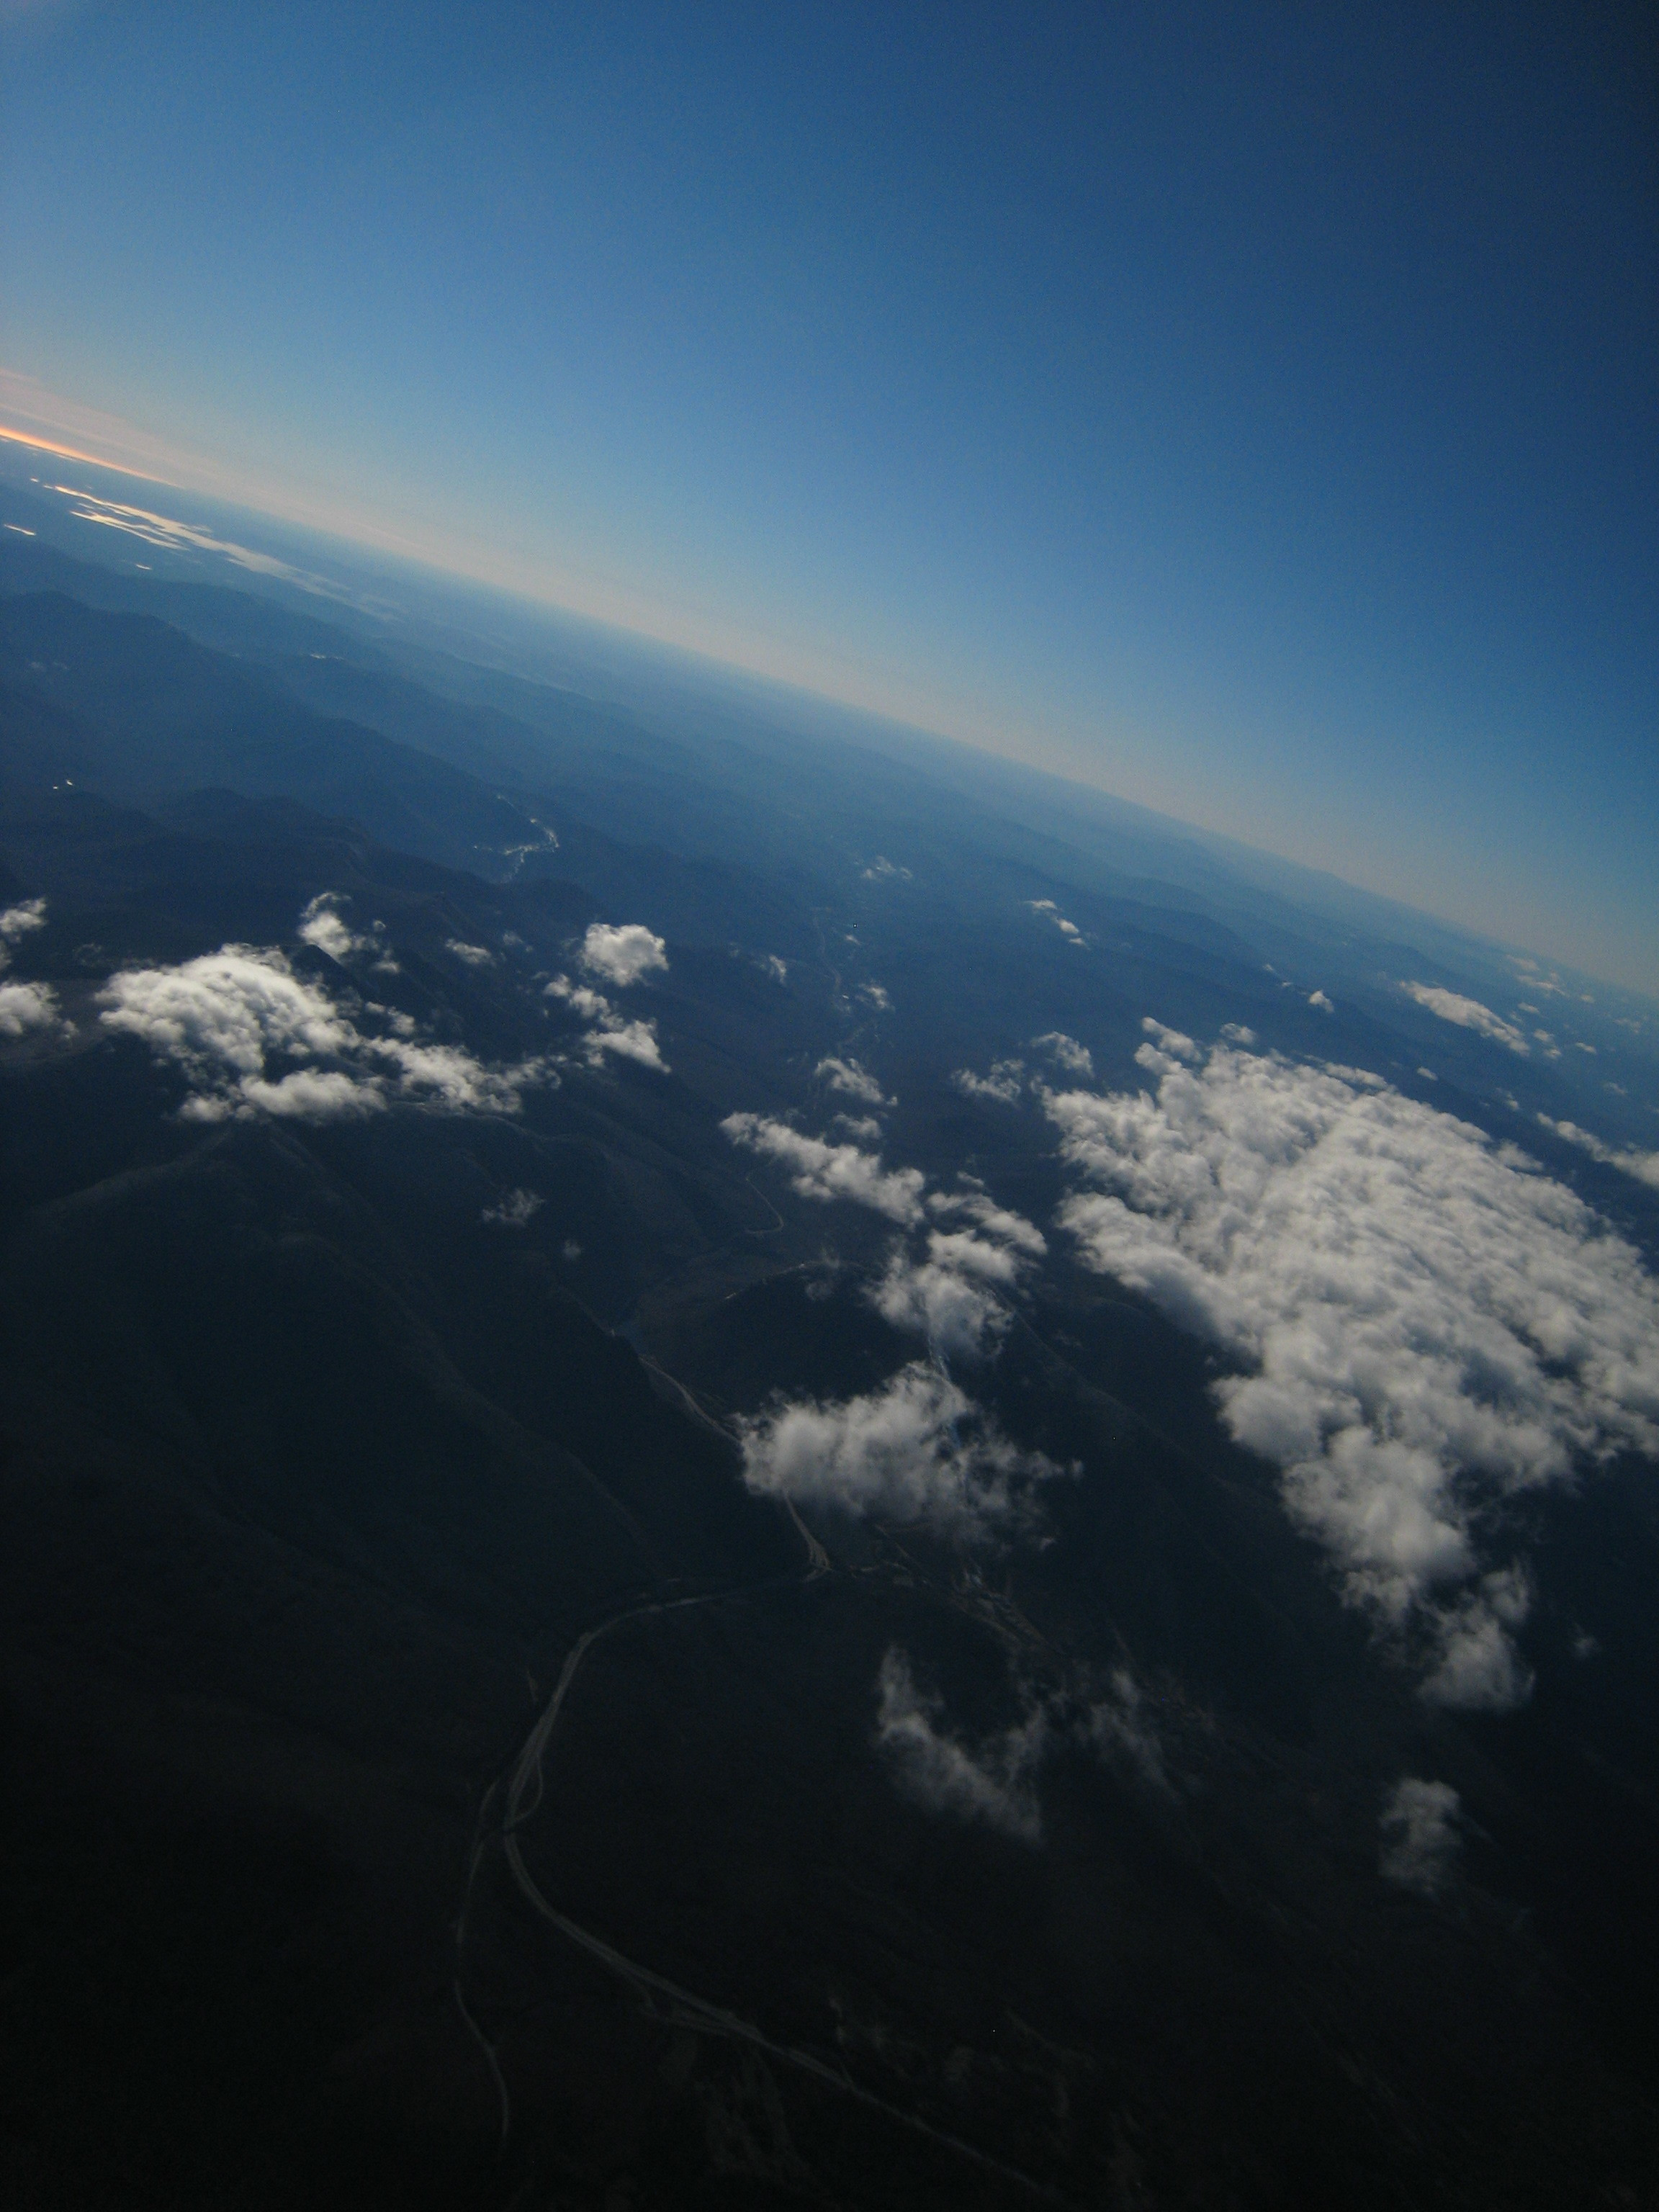 A view from 4,170 meters or about 13,000 feet up.